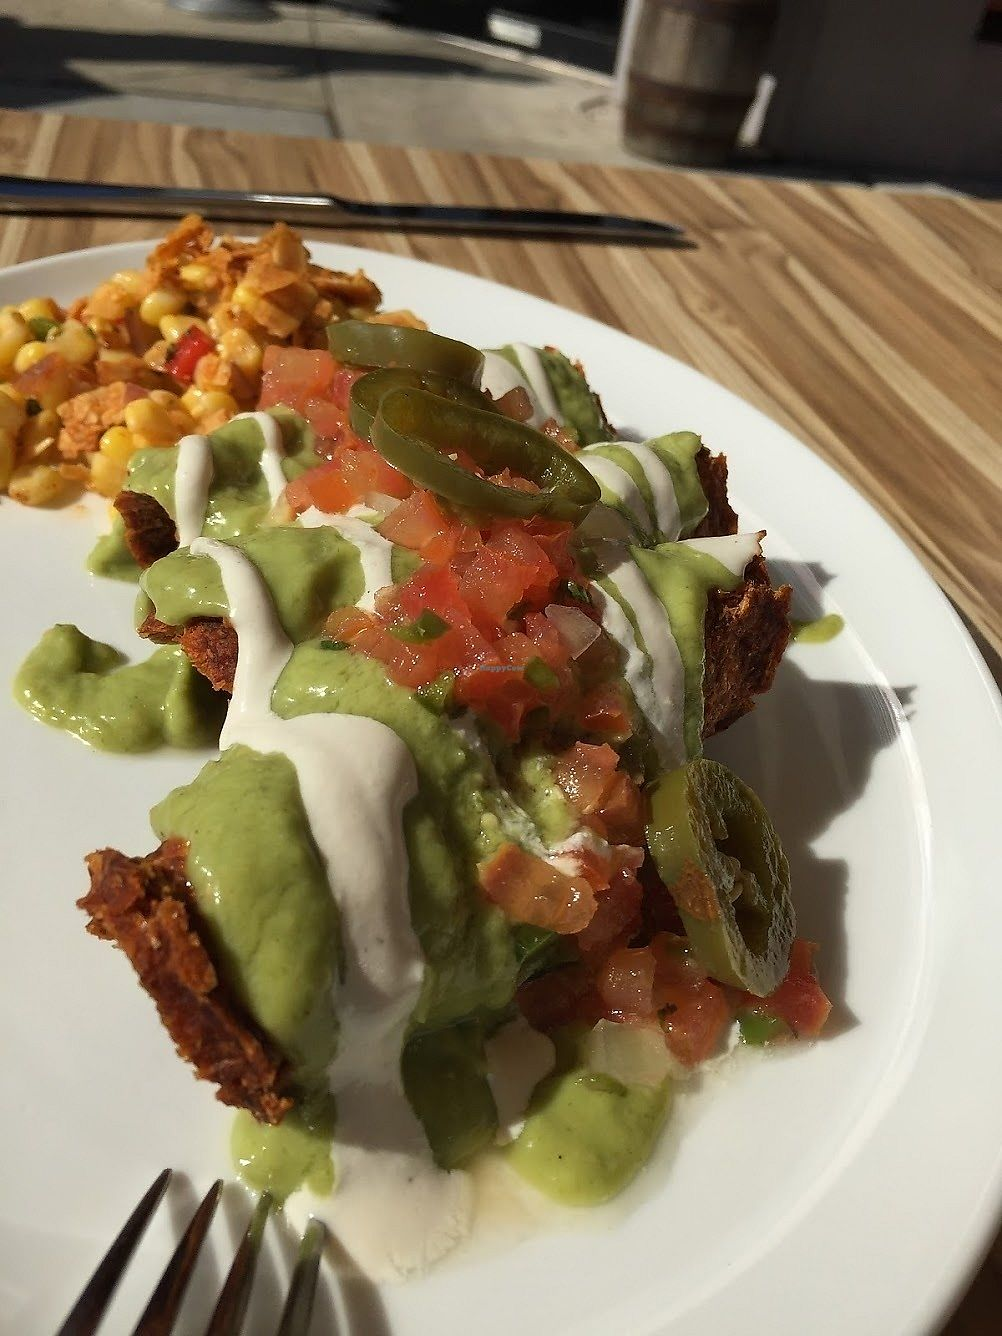 """Photo of The Cider Press Cafe   by <a href=""""/members/profile/Jamie9705"""">Jamie9705</a> <br/>Vegan enchiladas w/ a corn salad side  <br/> September 13, 2017  - <a href='/contact/abuse/image/62213/304011'>Report</a>"""